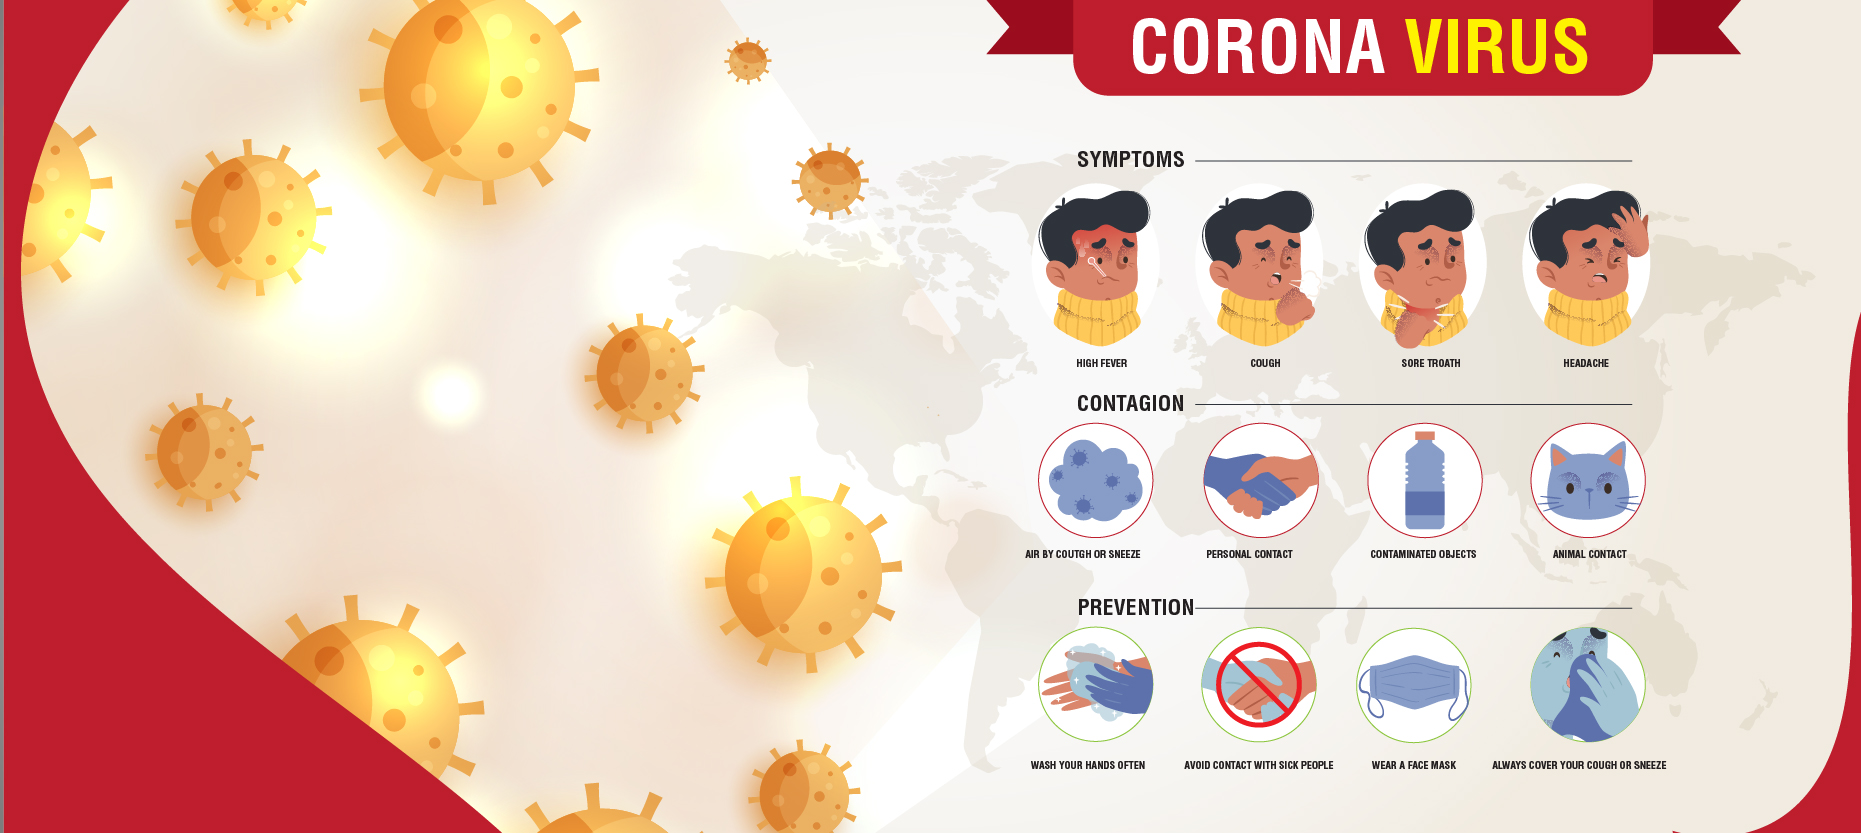 9 Powerful Ways to Stay Safe from Coronavirus